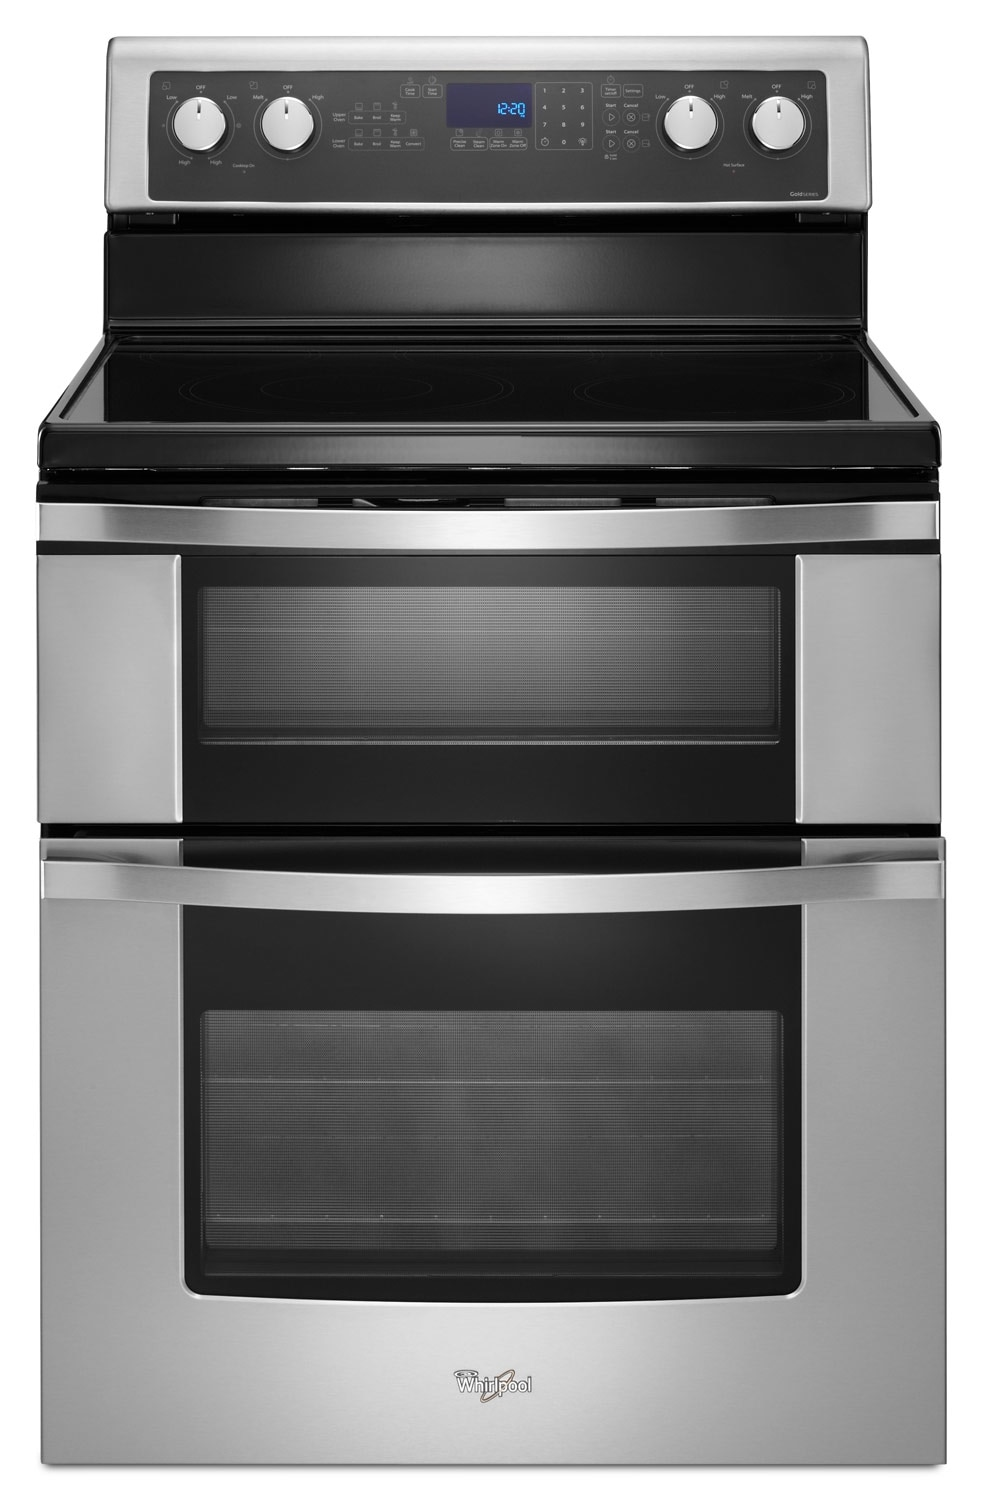 Cooking Products - Whirlpool Stainless Steel Freestanding Double Electric Range (6.7 Cu. Ft.) - YWGE755C0BS